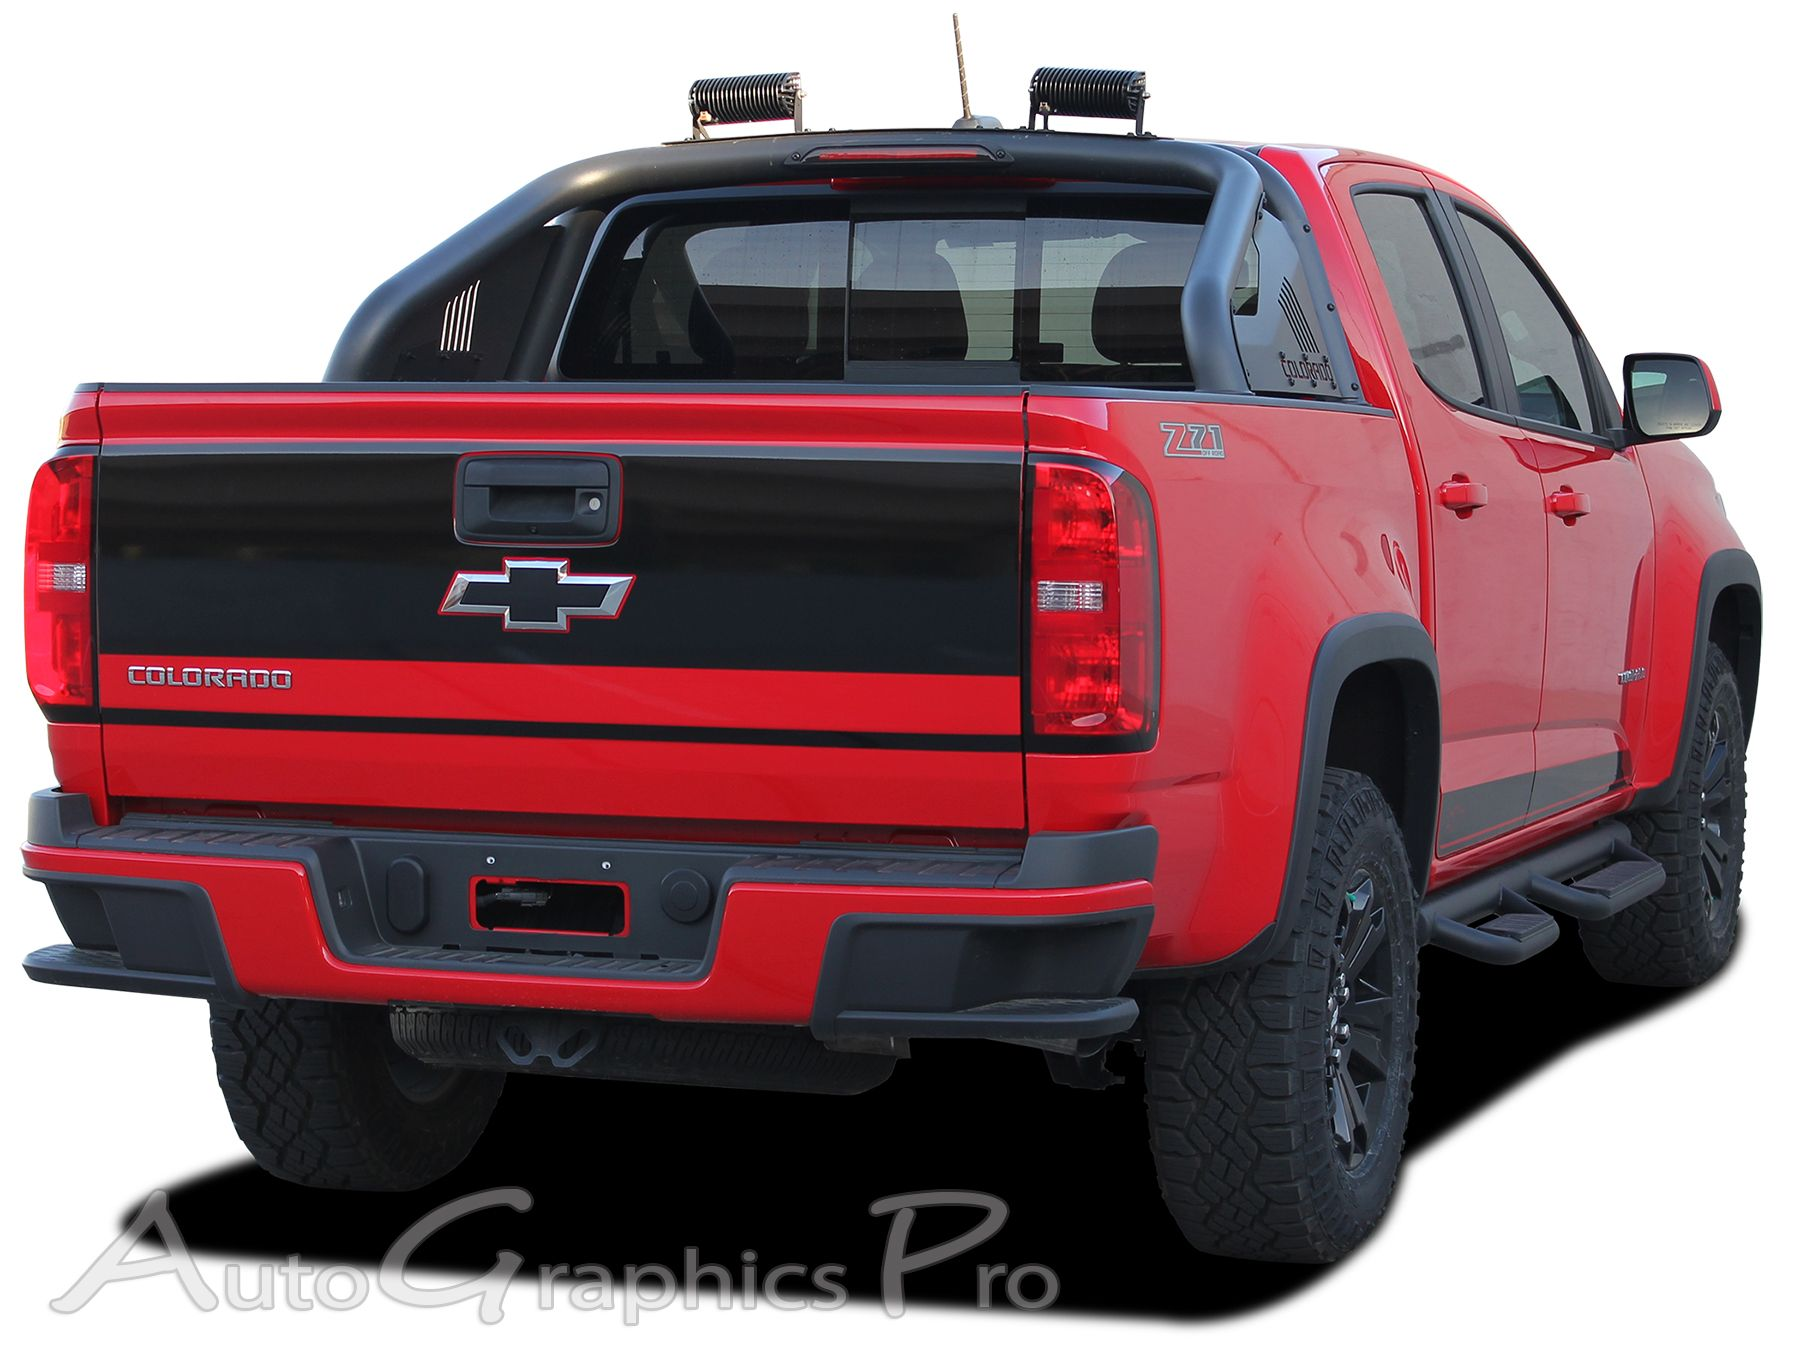 Chevy Colorado GRAND Rear Tailgate Accent Vinyl - Custom decal graphics on vehiclesgetlaunched custom designed vinyl graphics decals turn heads and